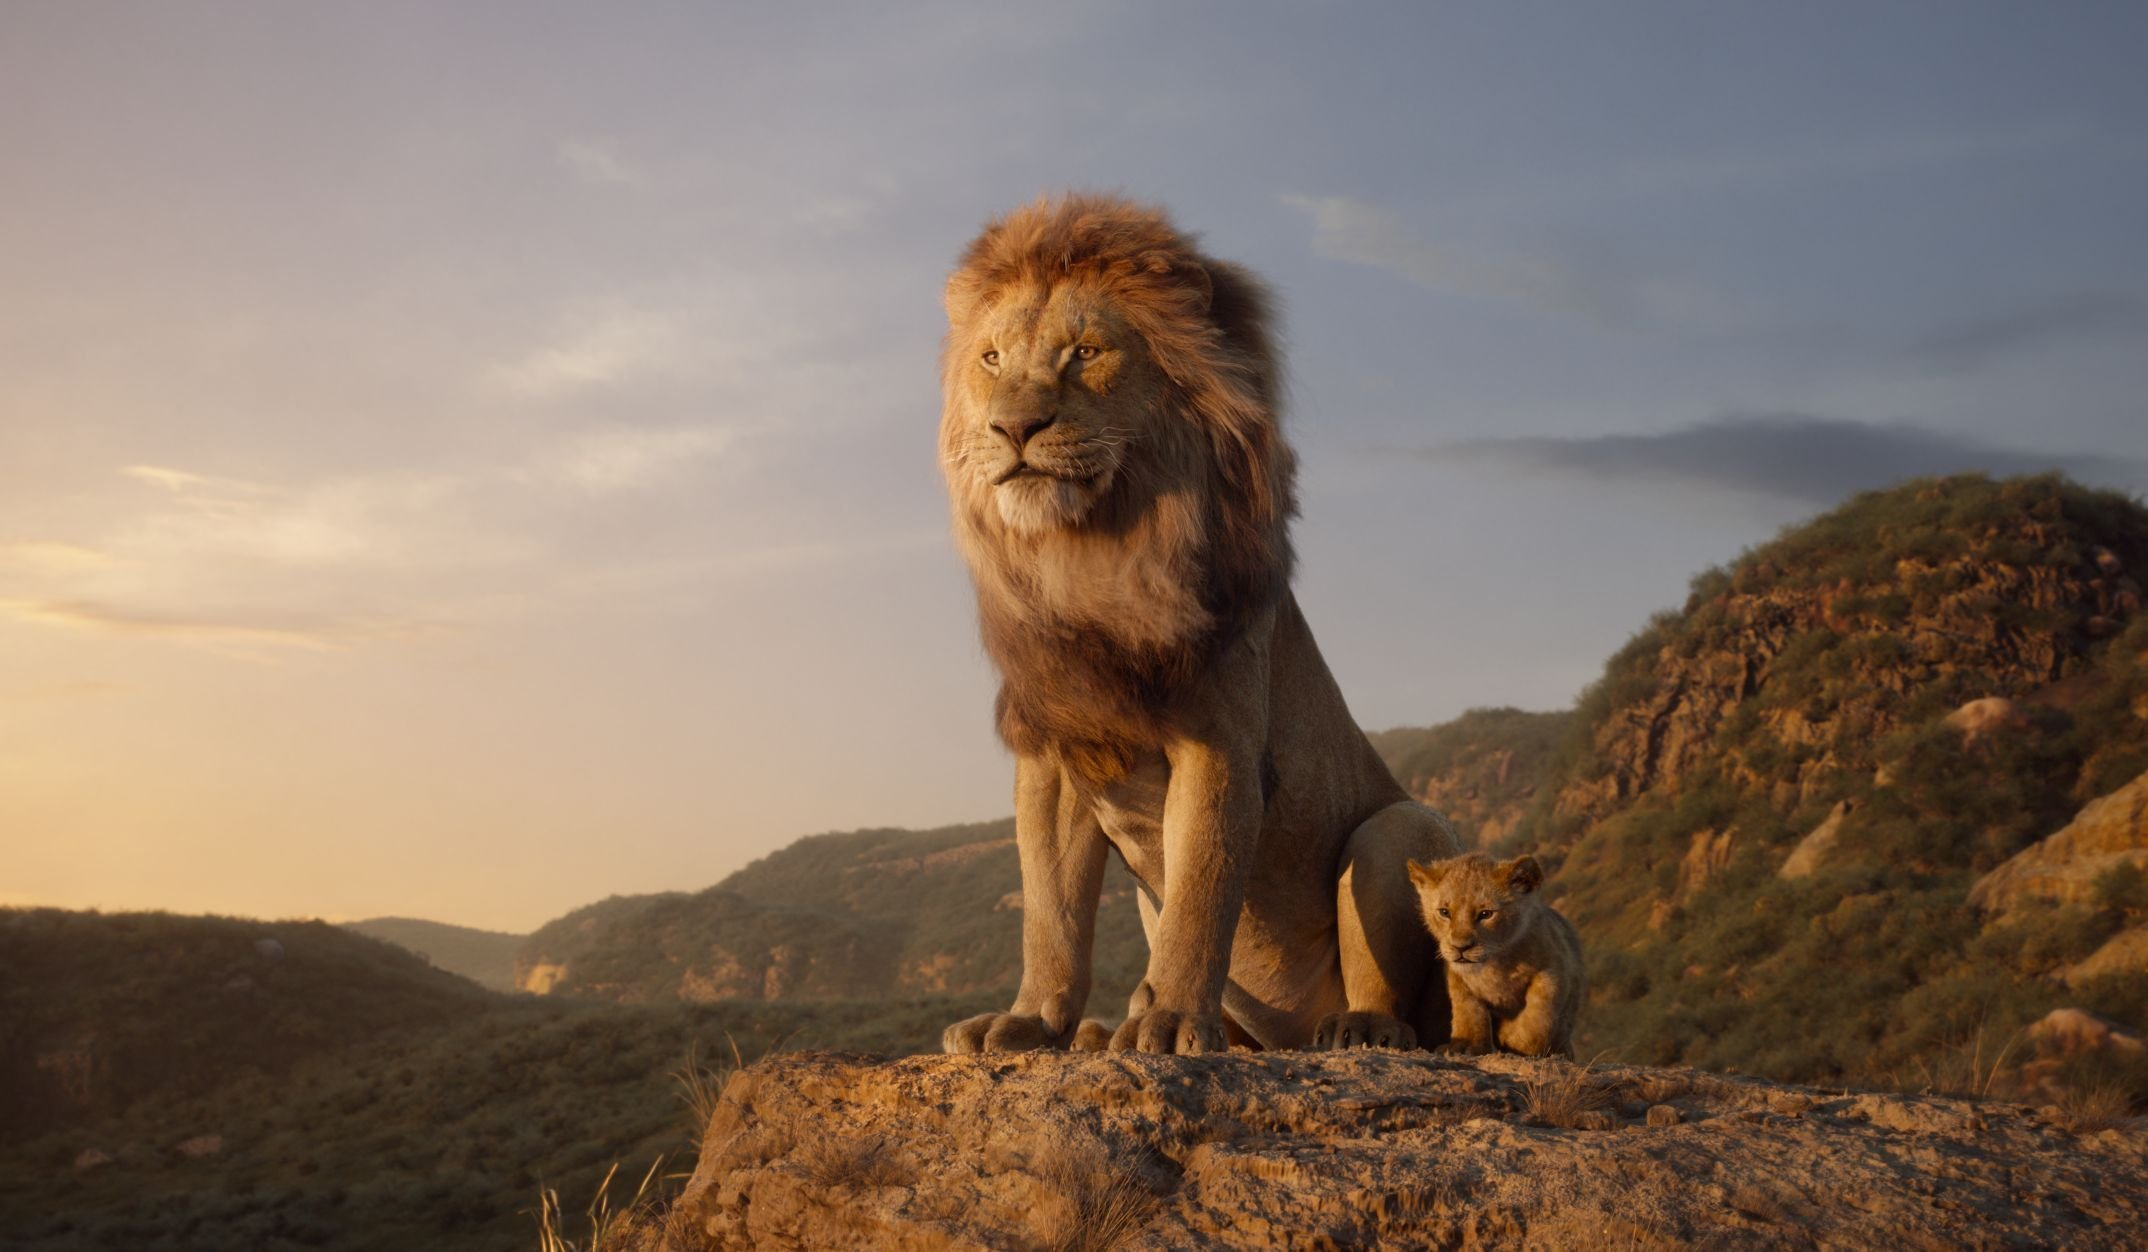 'The Lion King' filmmakers couldn't wait to be king of visual effects